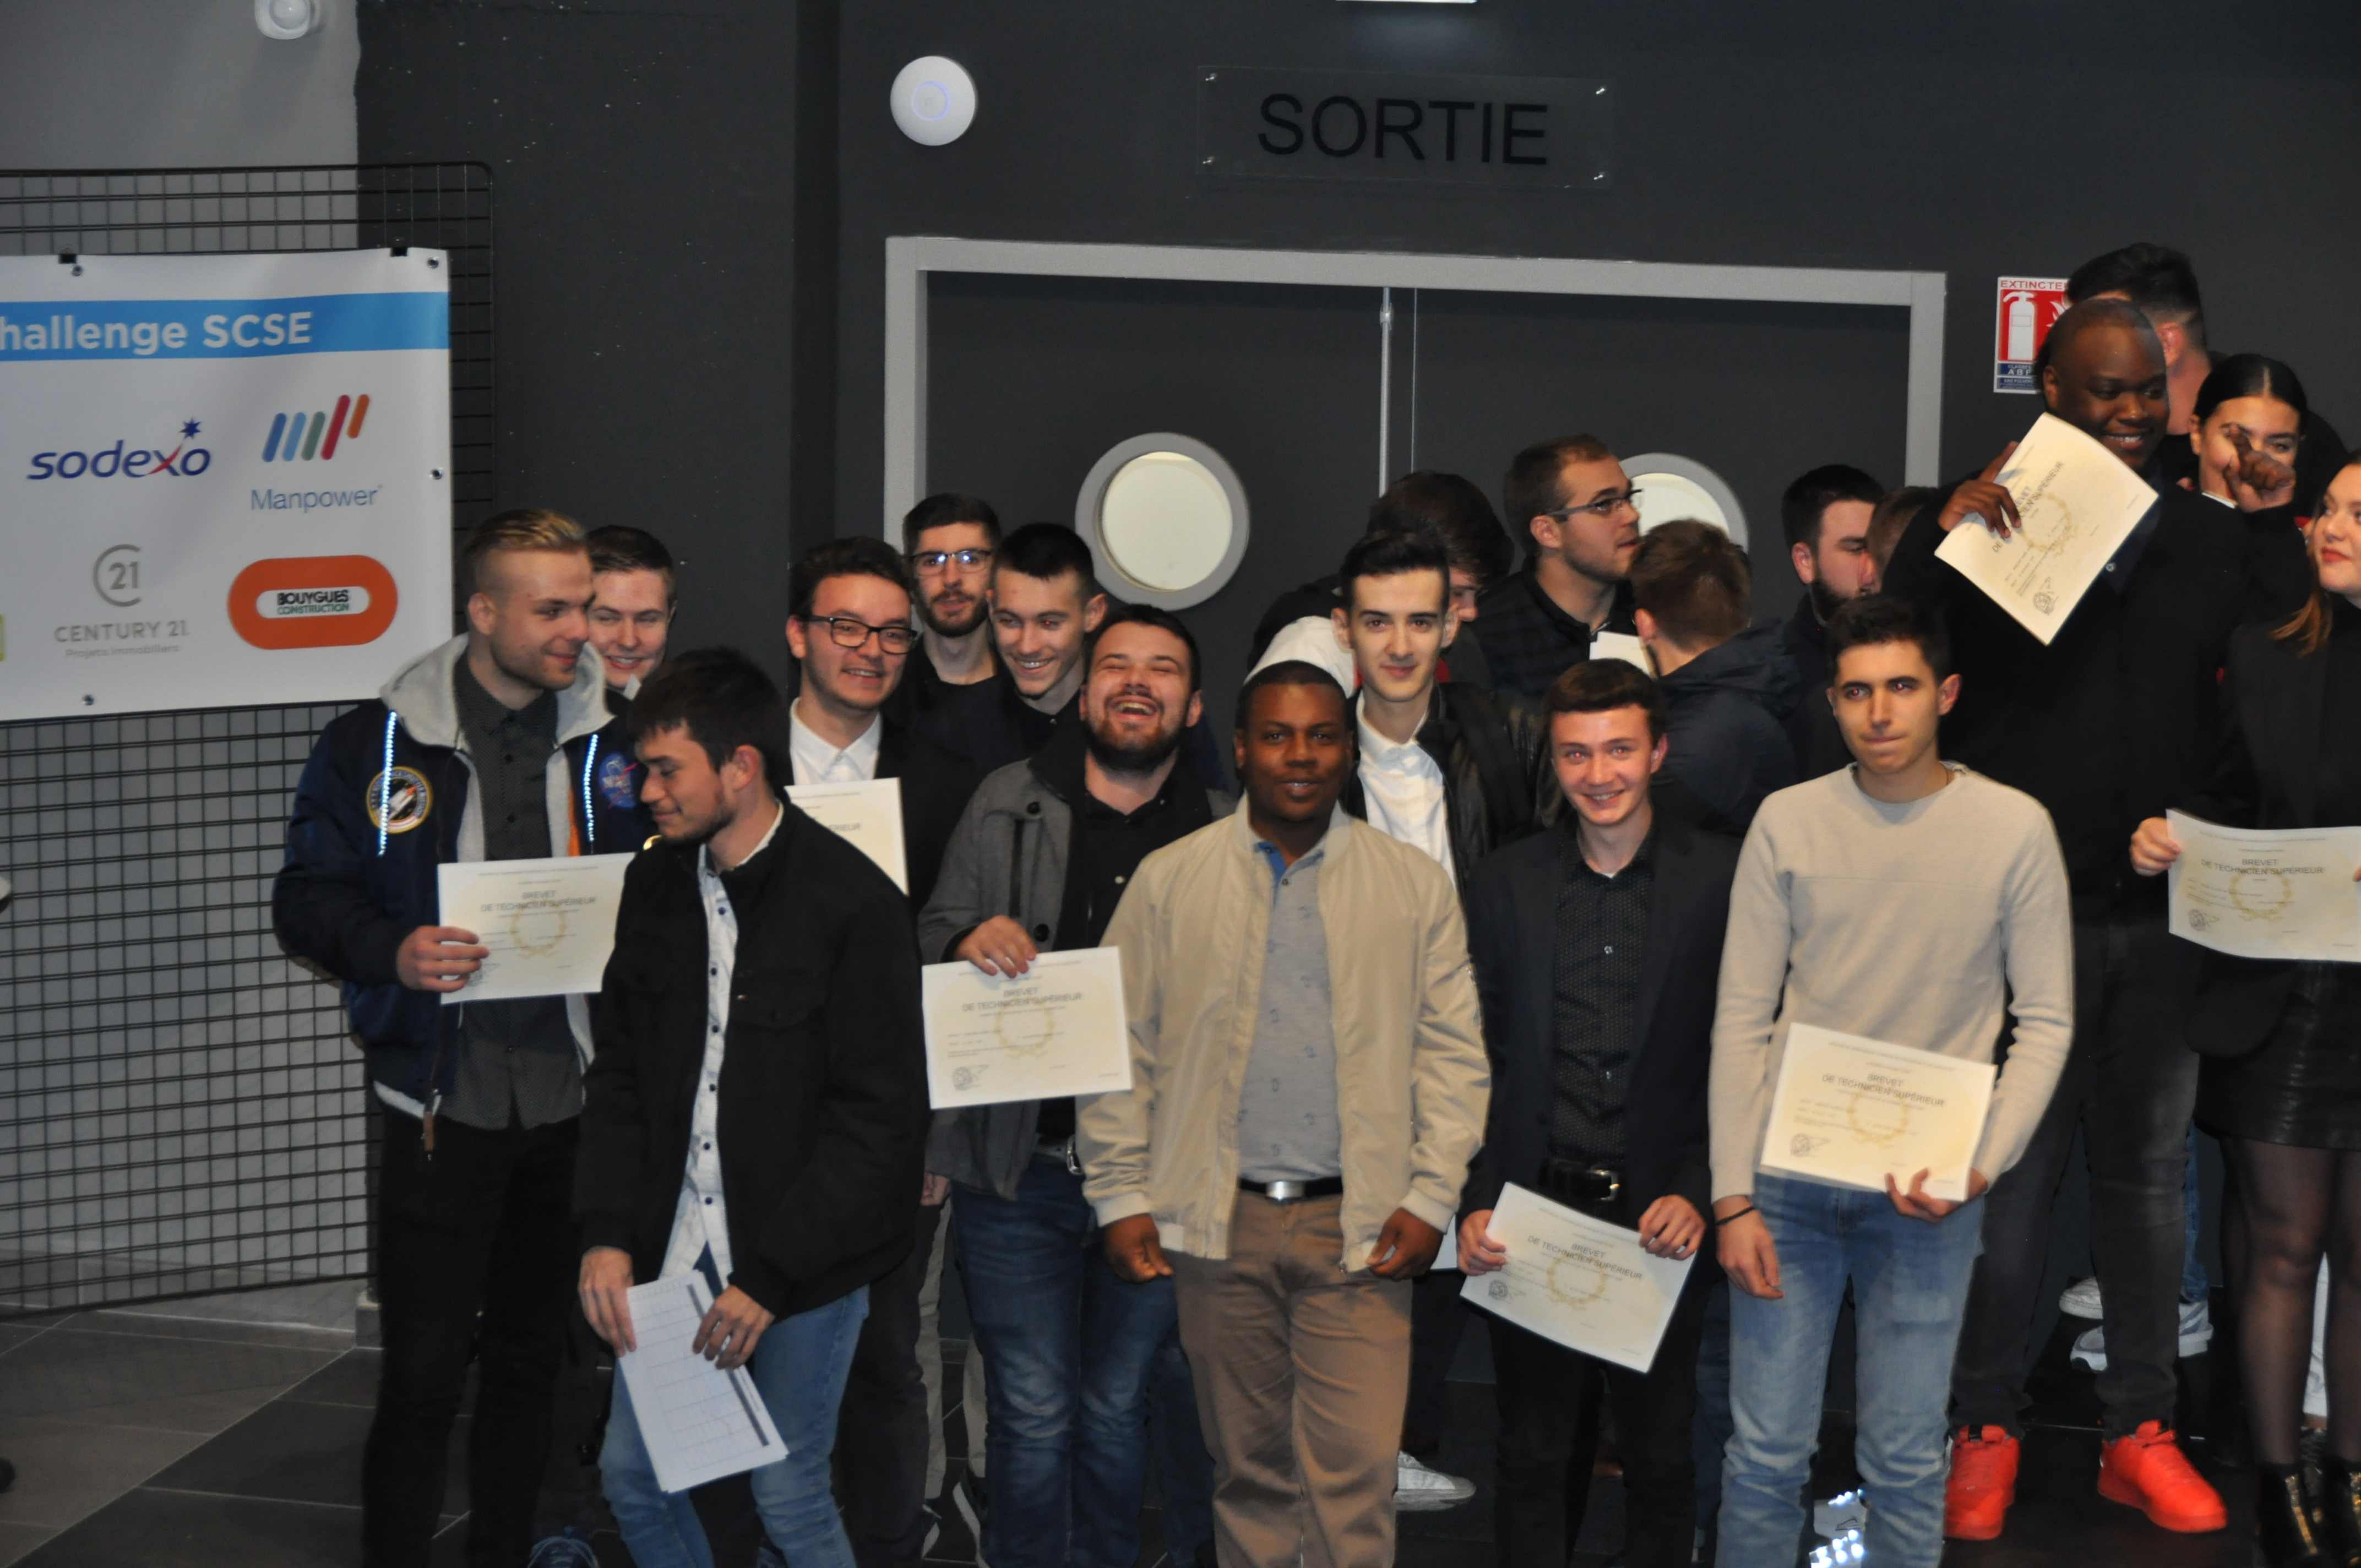 Remise Diplomes SUP0034